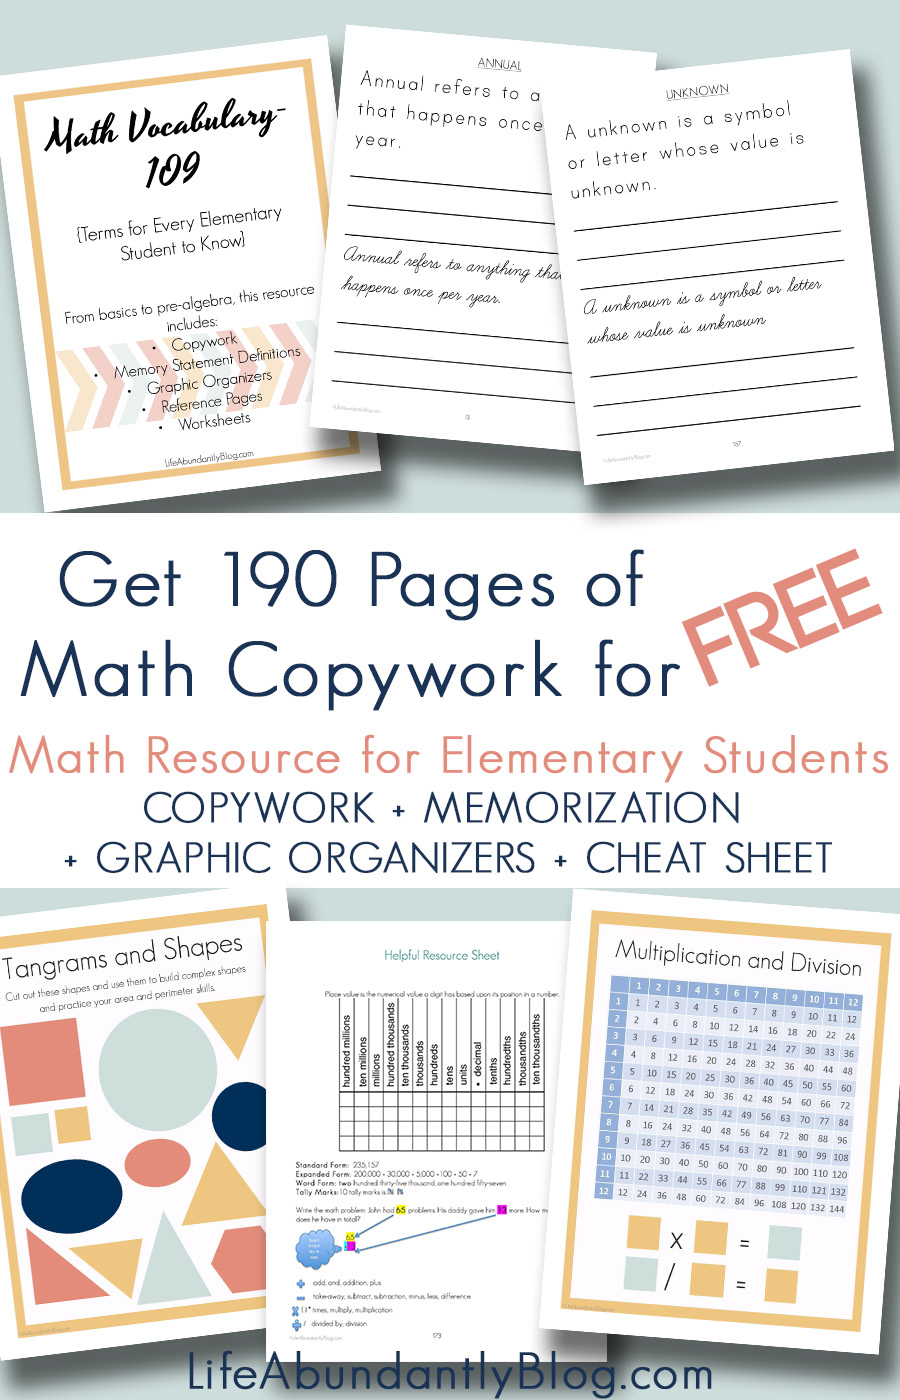 Looking for math copywork to supplement your math curriculum? Do you need a quick reference glossary to keep on hand for your elementary math students? This FREE 190 page workbook includes 109 math vocabulary terms in cursive copywork or print copywork for your elementary math student.